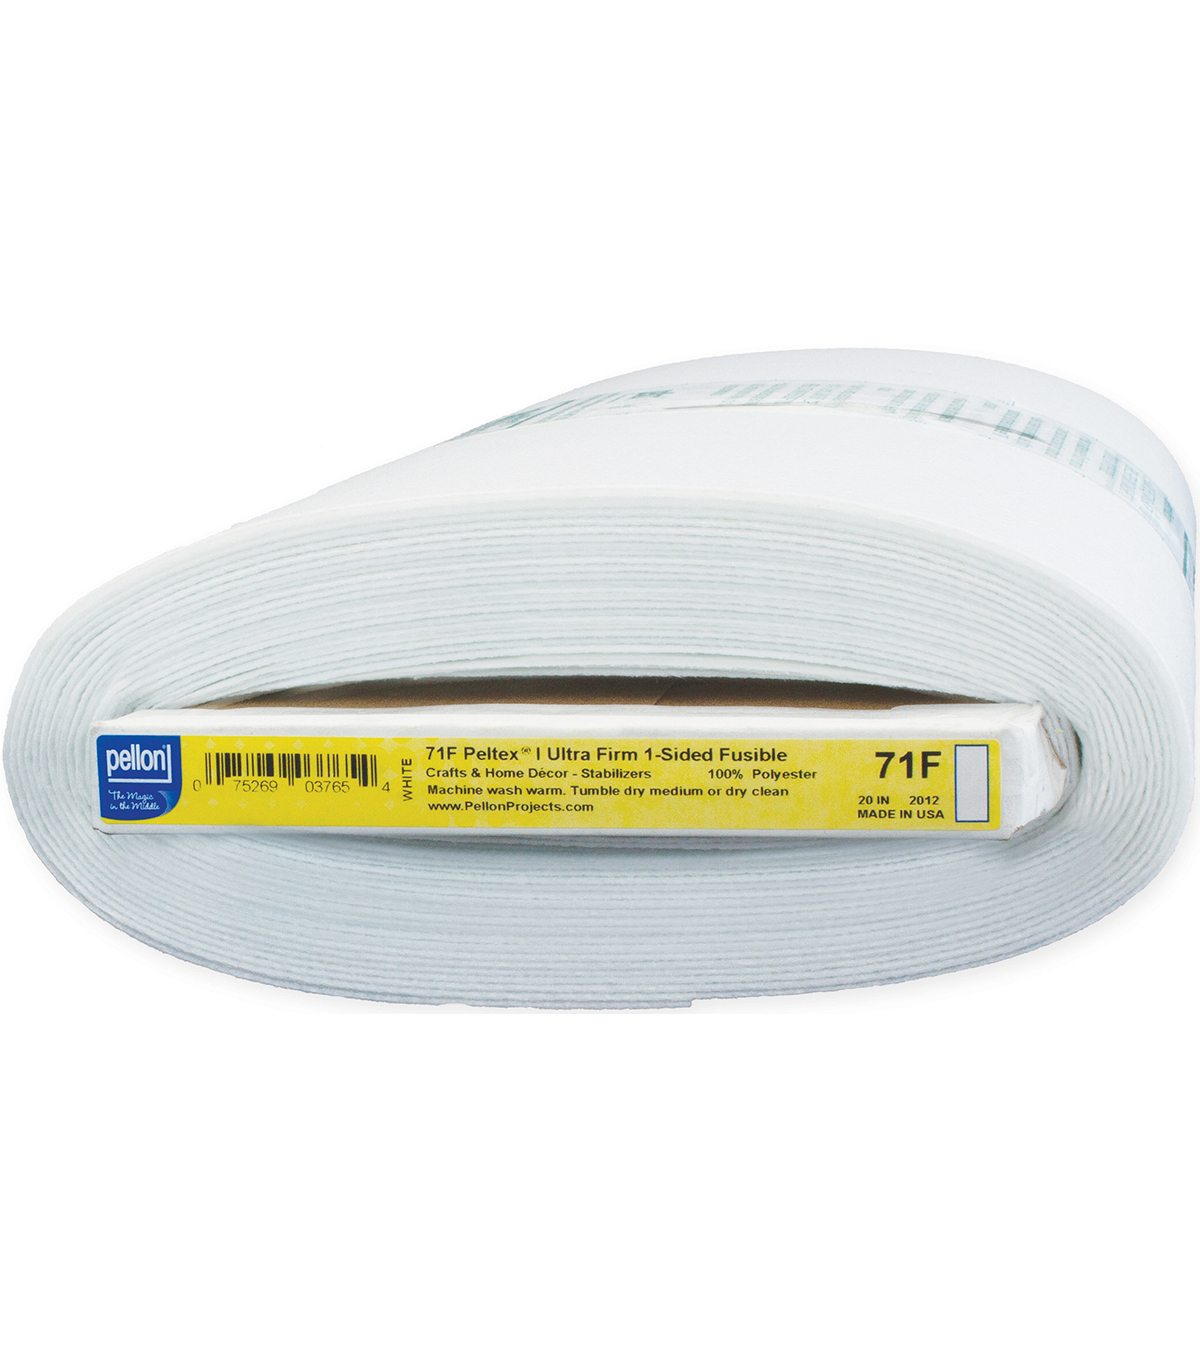 Pellon 71F Peltex I One-Sided Fusible, White 20\u0022 x 10yds bolt